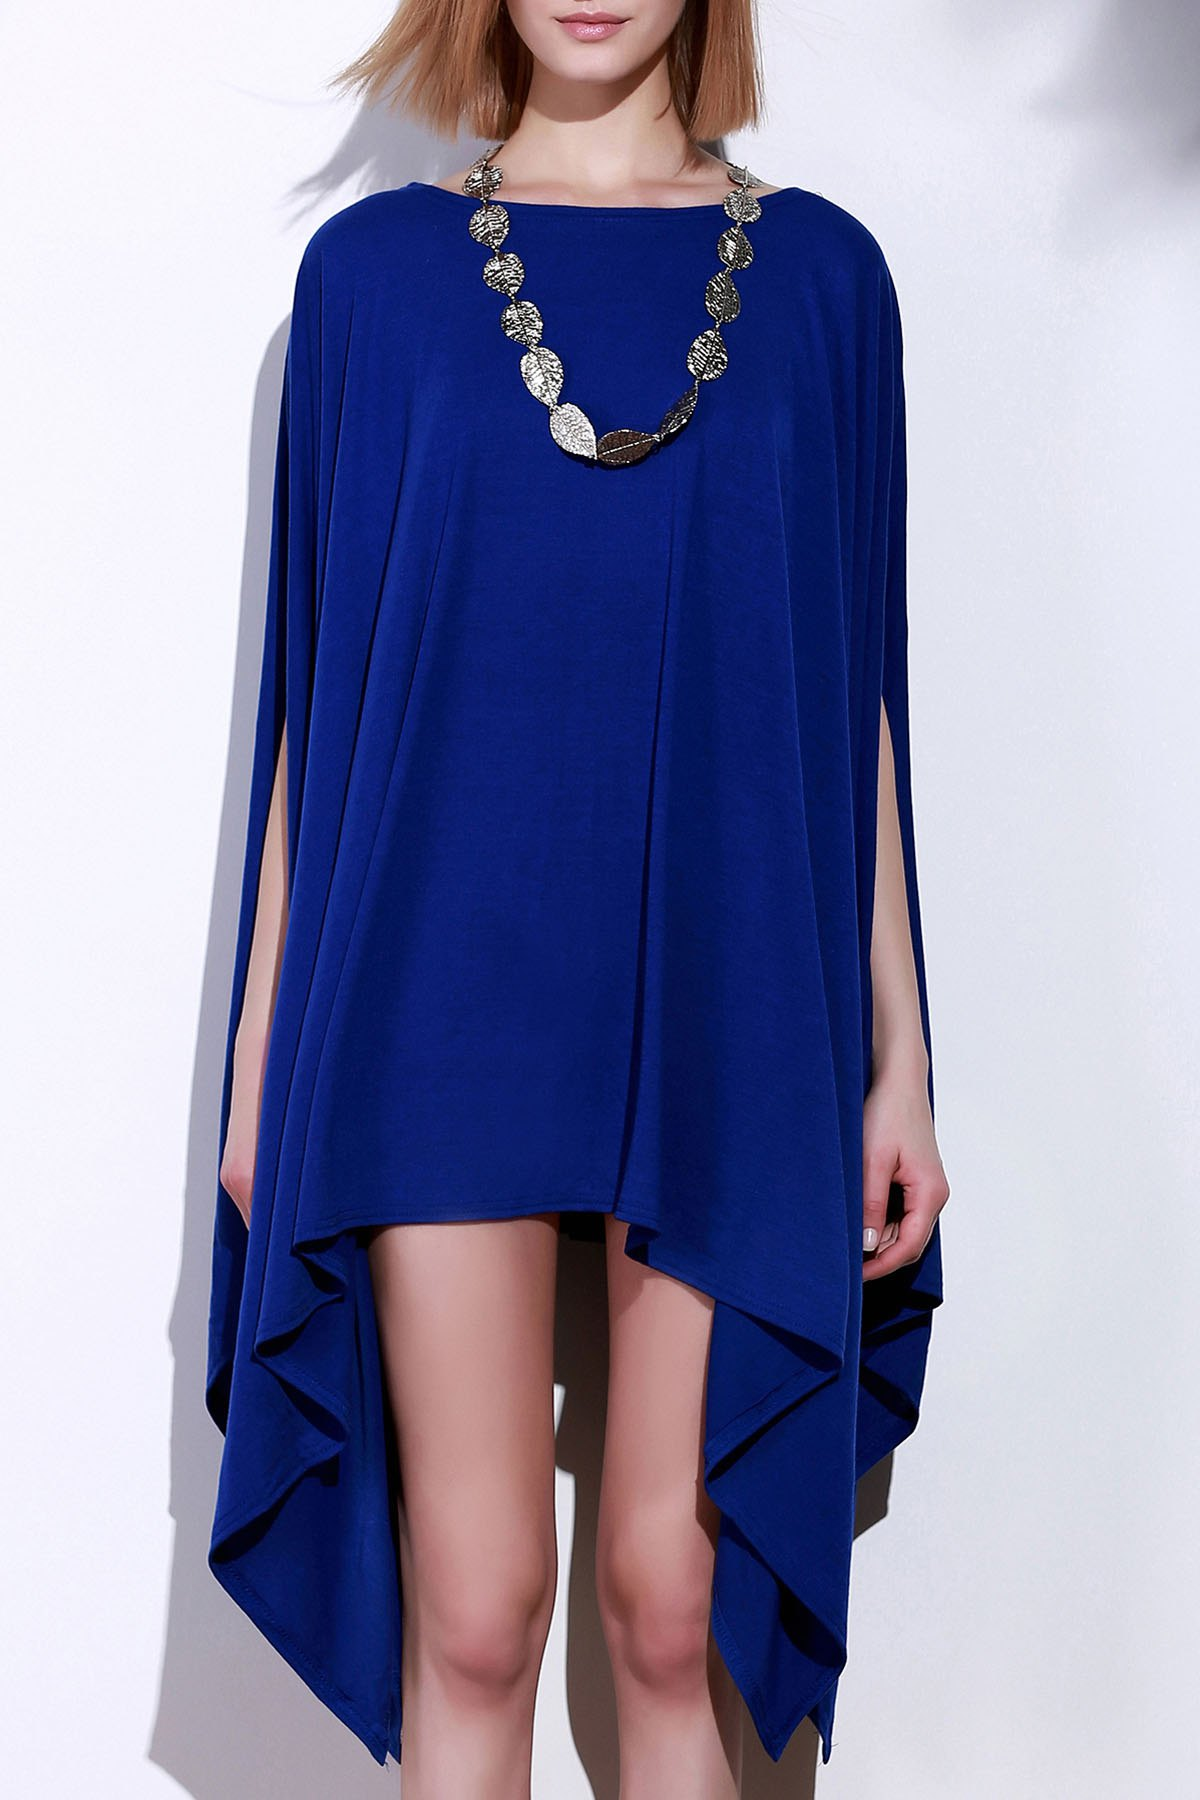 Simple Solid Color 1/2 Batwing Sleeve Asymmetric Loose Top For Women - BLUE L